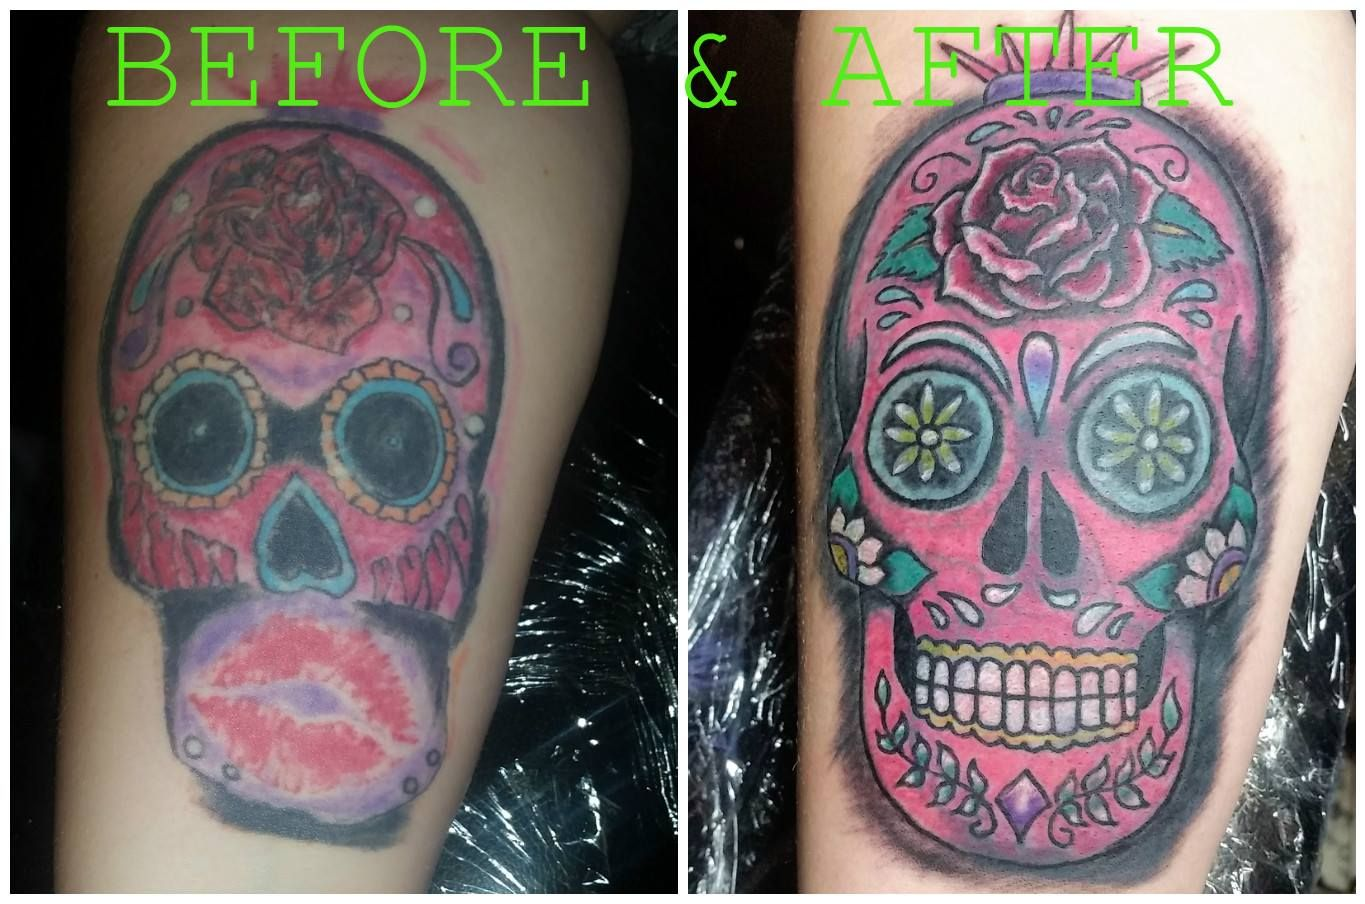 Rework Coverup Thiscanbedone Tattoo Colorblasted Color Tattoo Somuchbetter Studio13tattoomg Tattoos Skull Tattoo Cover Up